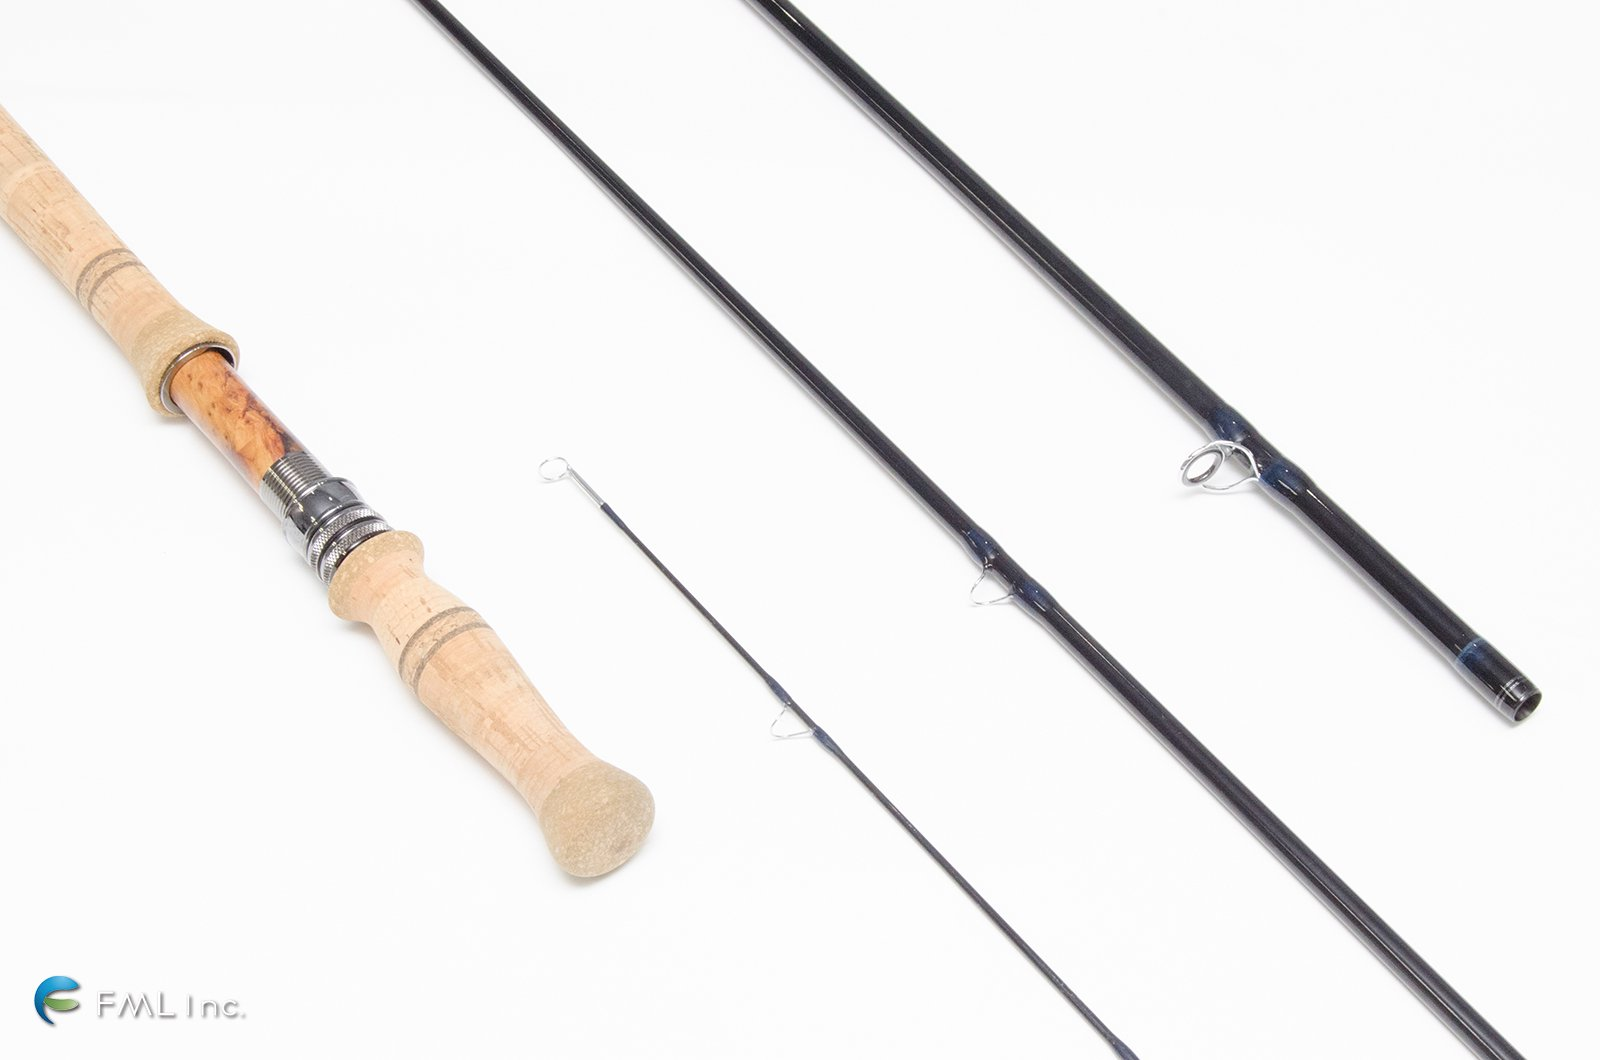 <img class='new_mark_img1' src='https://img.shop-pro.jp/img/new/icons57.gif' style='border:none;display:inline;margin:0px;padding:0px;width:auto;' />Beulah Onyx Spey Rod 8wt 14'0″